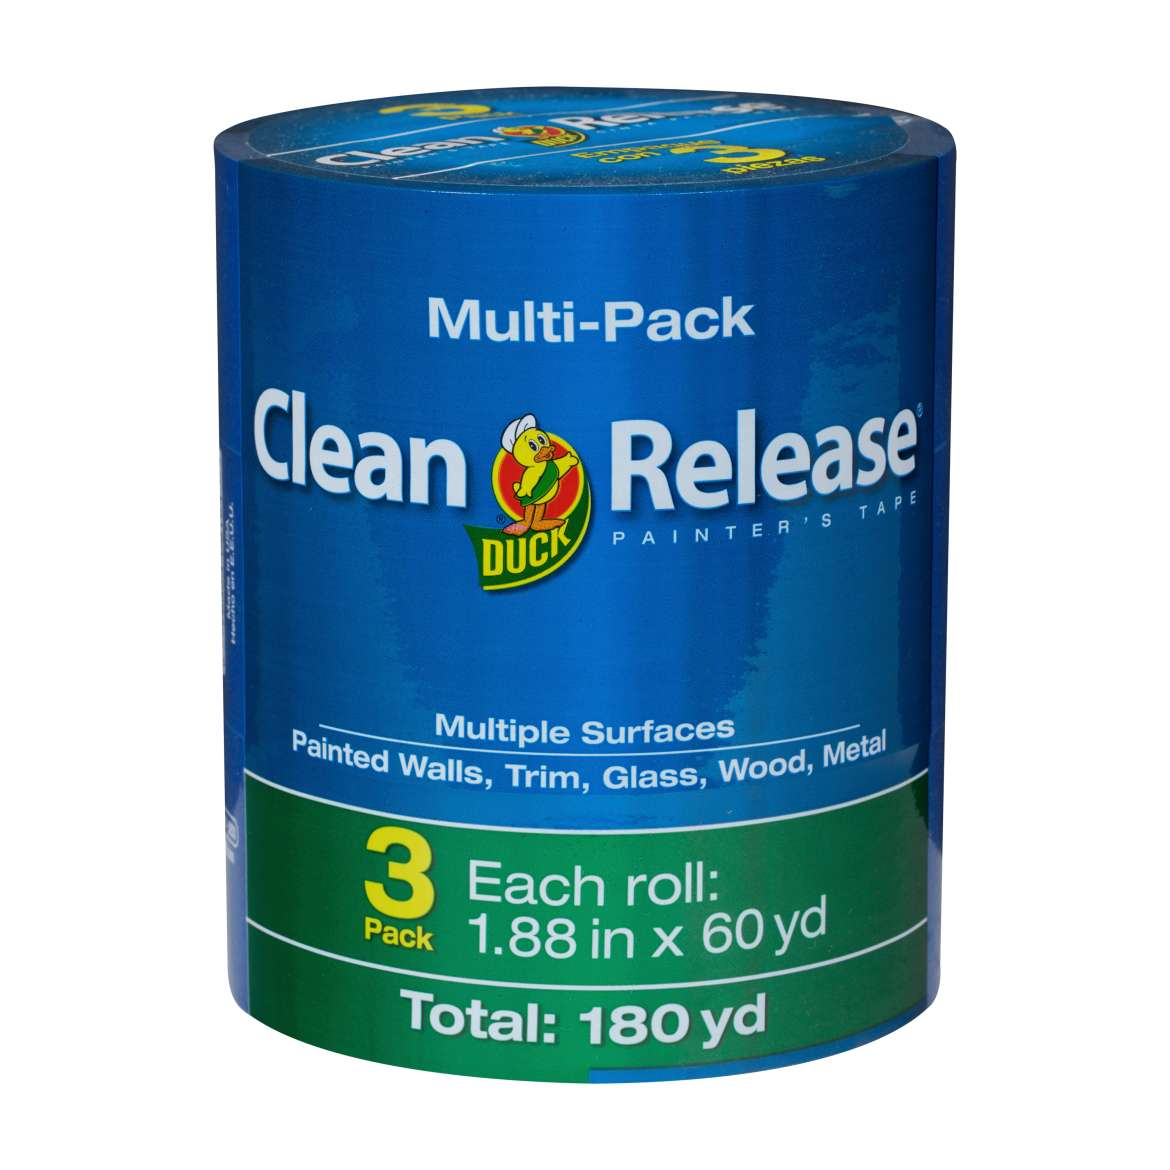 Clean Release® Painter's Tape - Blue, 3 pk, 1.88 in. x 60 yd. Image